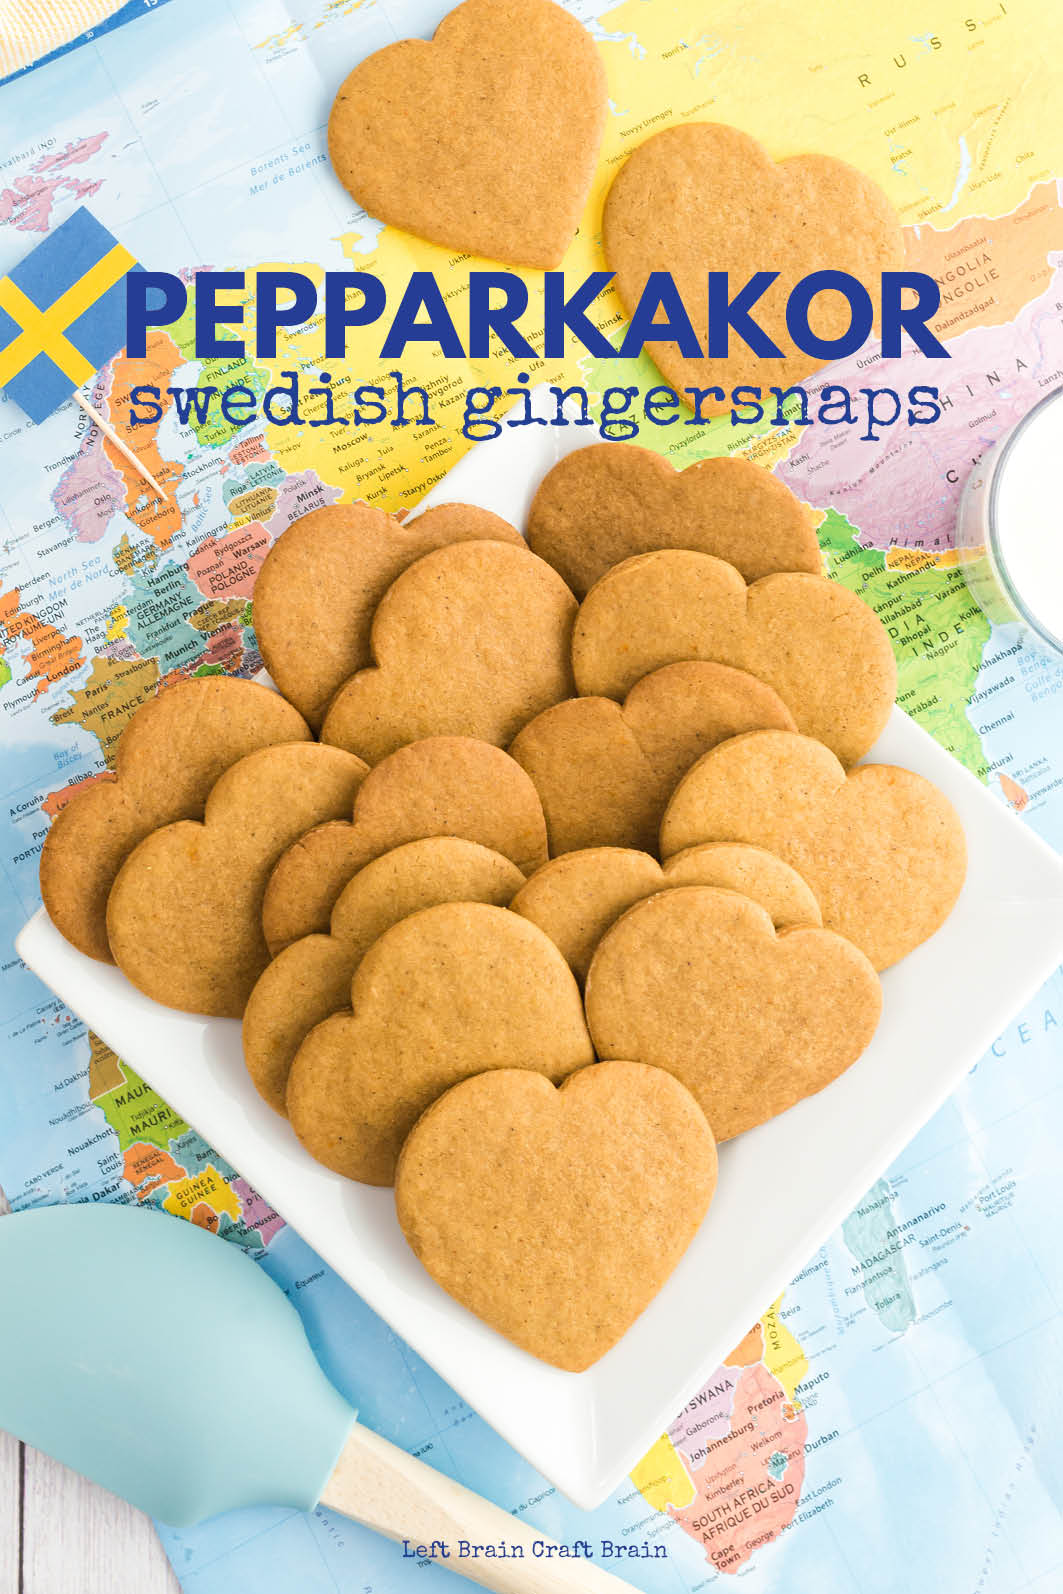 These crispy, sweet pepparkakor or Swedish gingersnap cookies have the perfect amount of spice. The gingernsnaps are perfect for Christmas / holiday giving or snacking any time of the year.